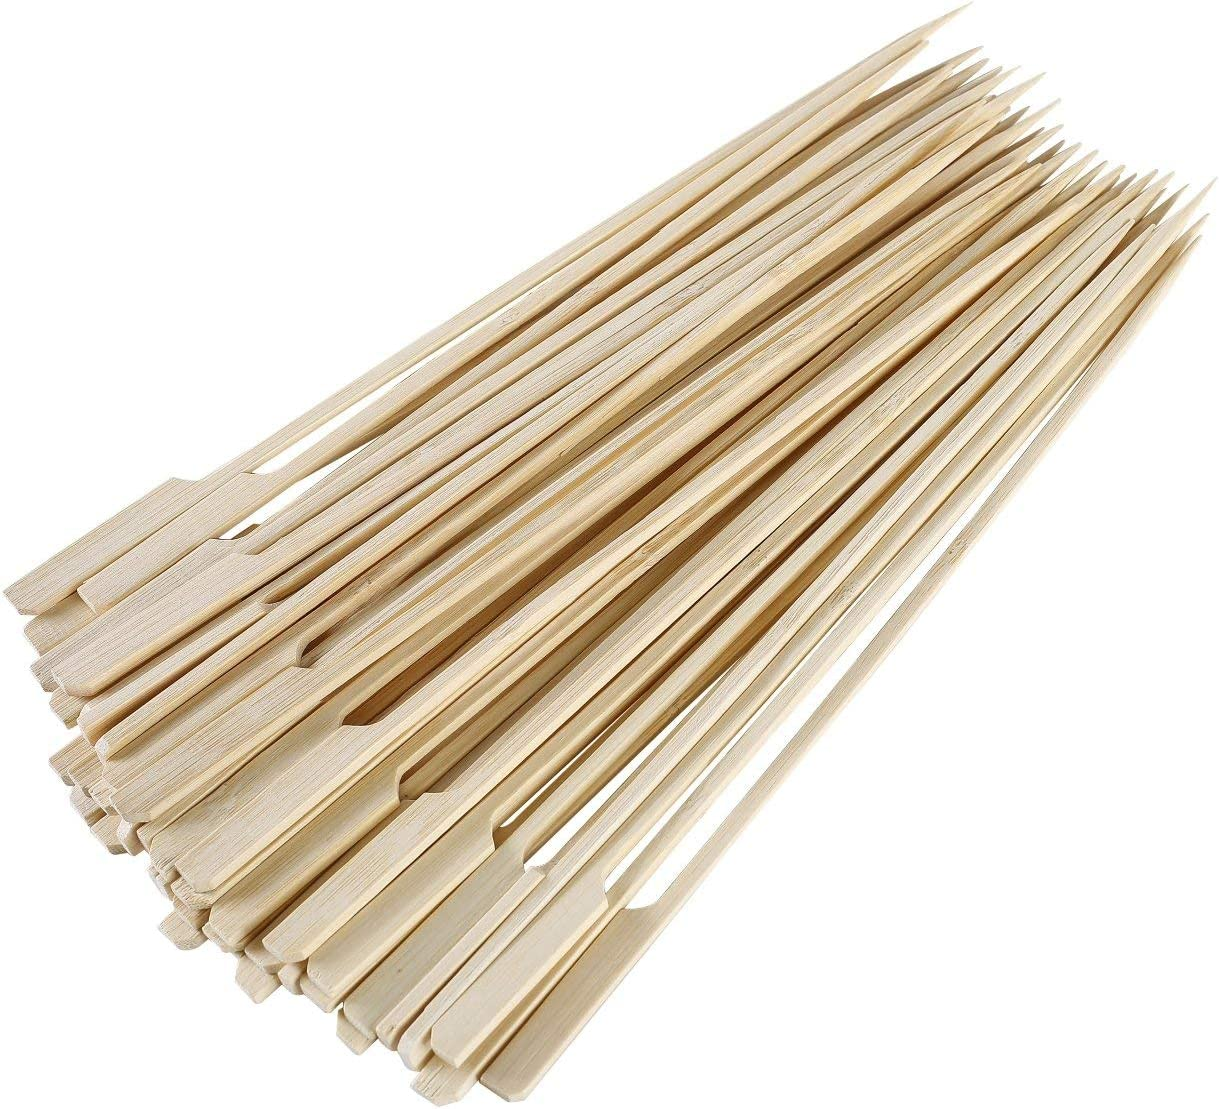 Cocktails and Indoor and Outdoor Barbecue Supplies Teblacker 300 Pieces Bamboo Skewers Party Supplies Natural Paddle Bamboo Sticks Used for BBQ Kebabs